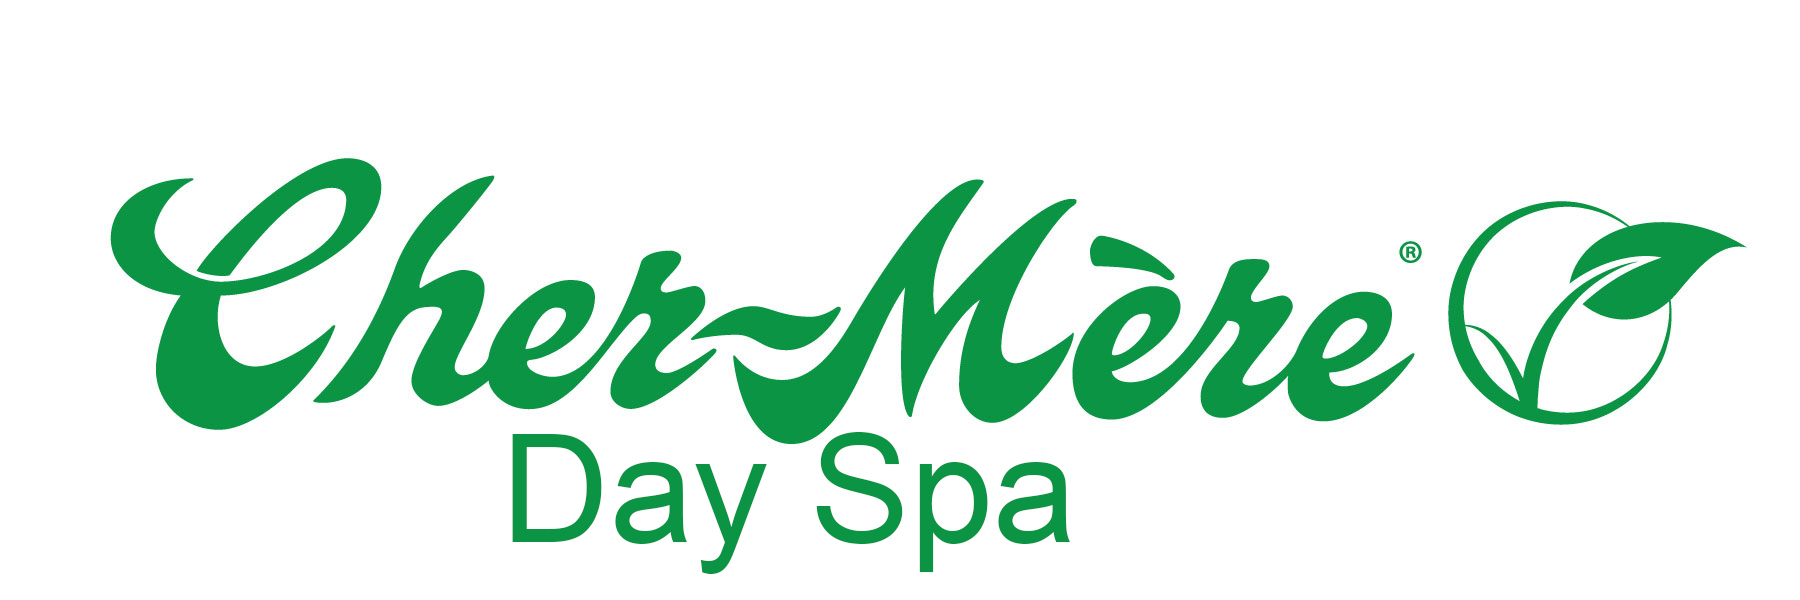 Cher-Mere Day Spa